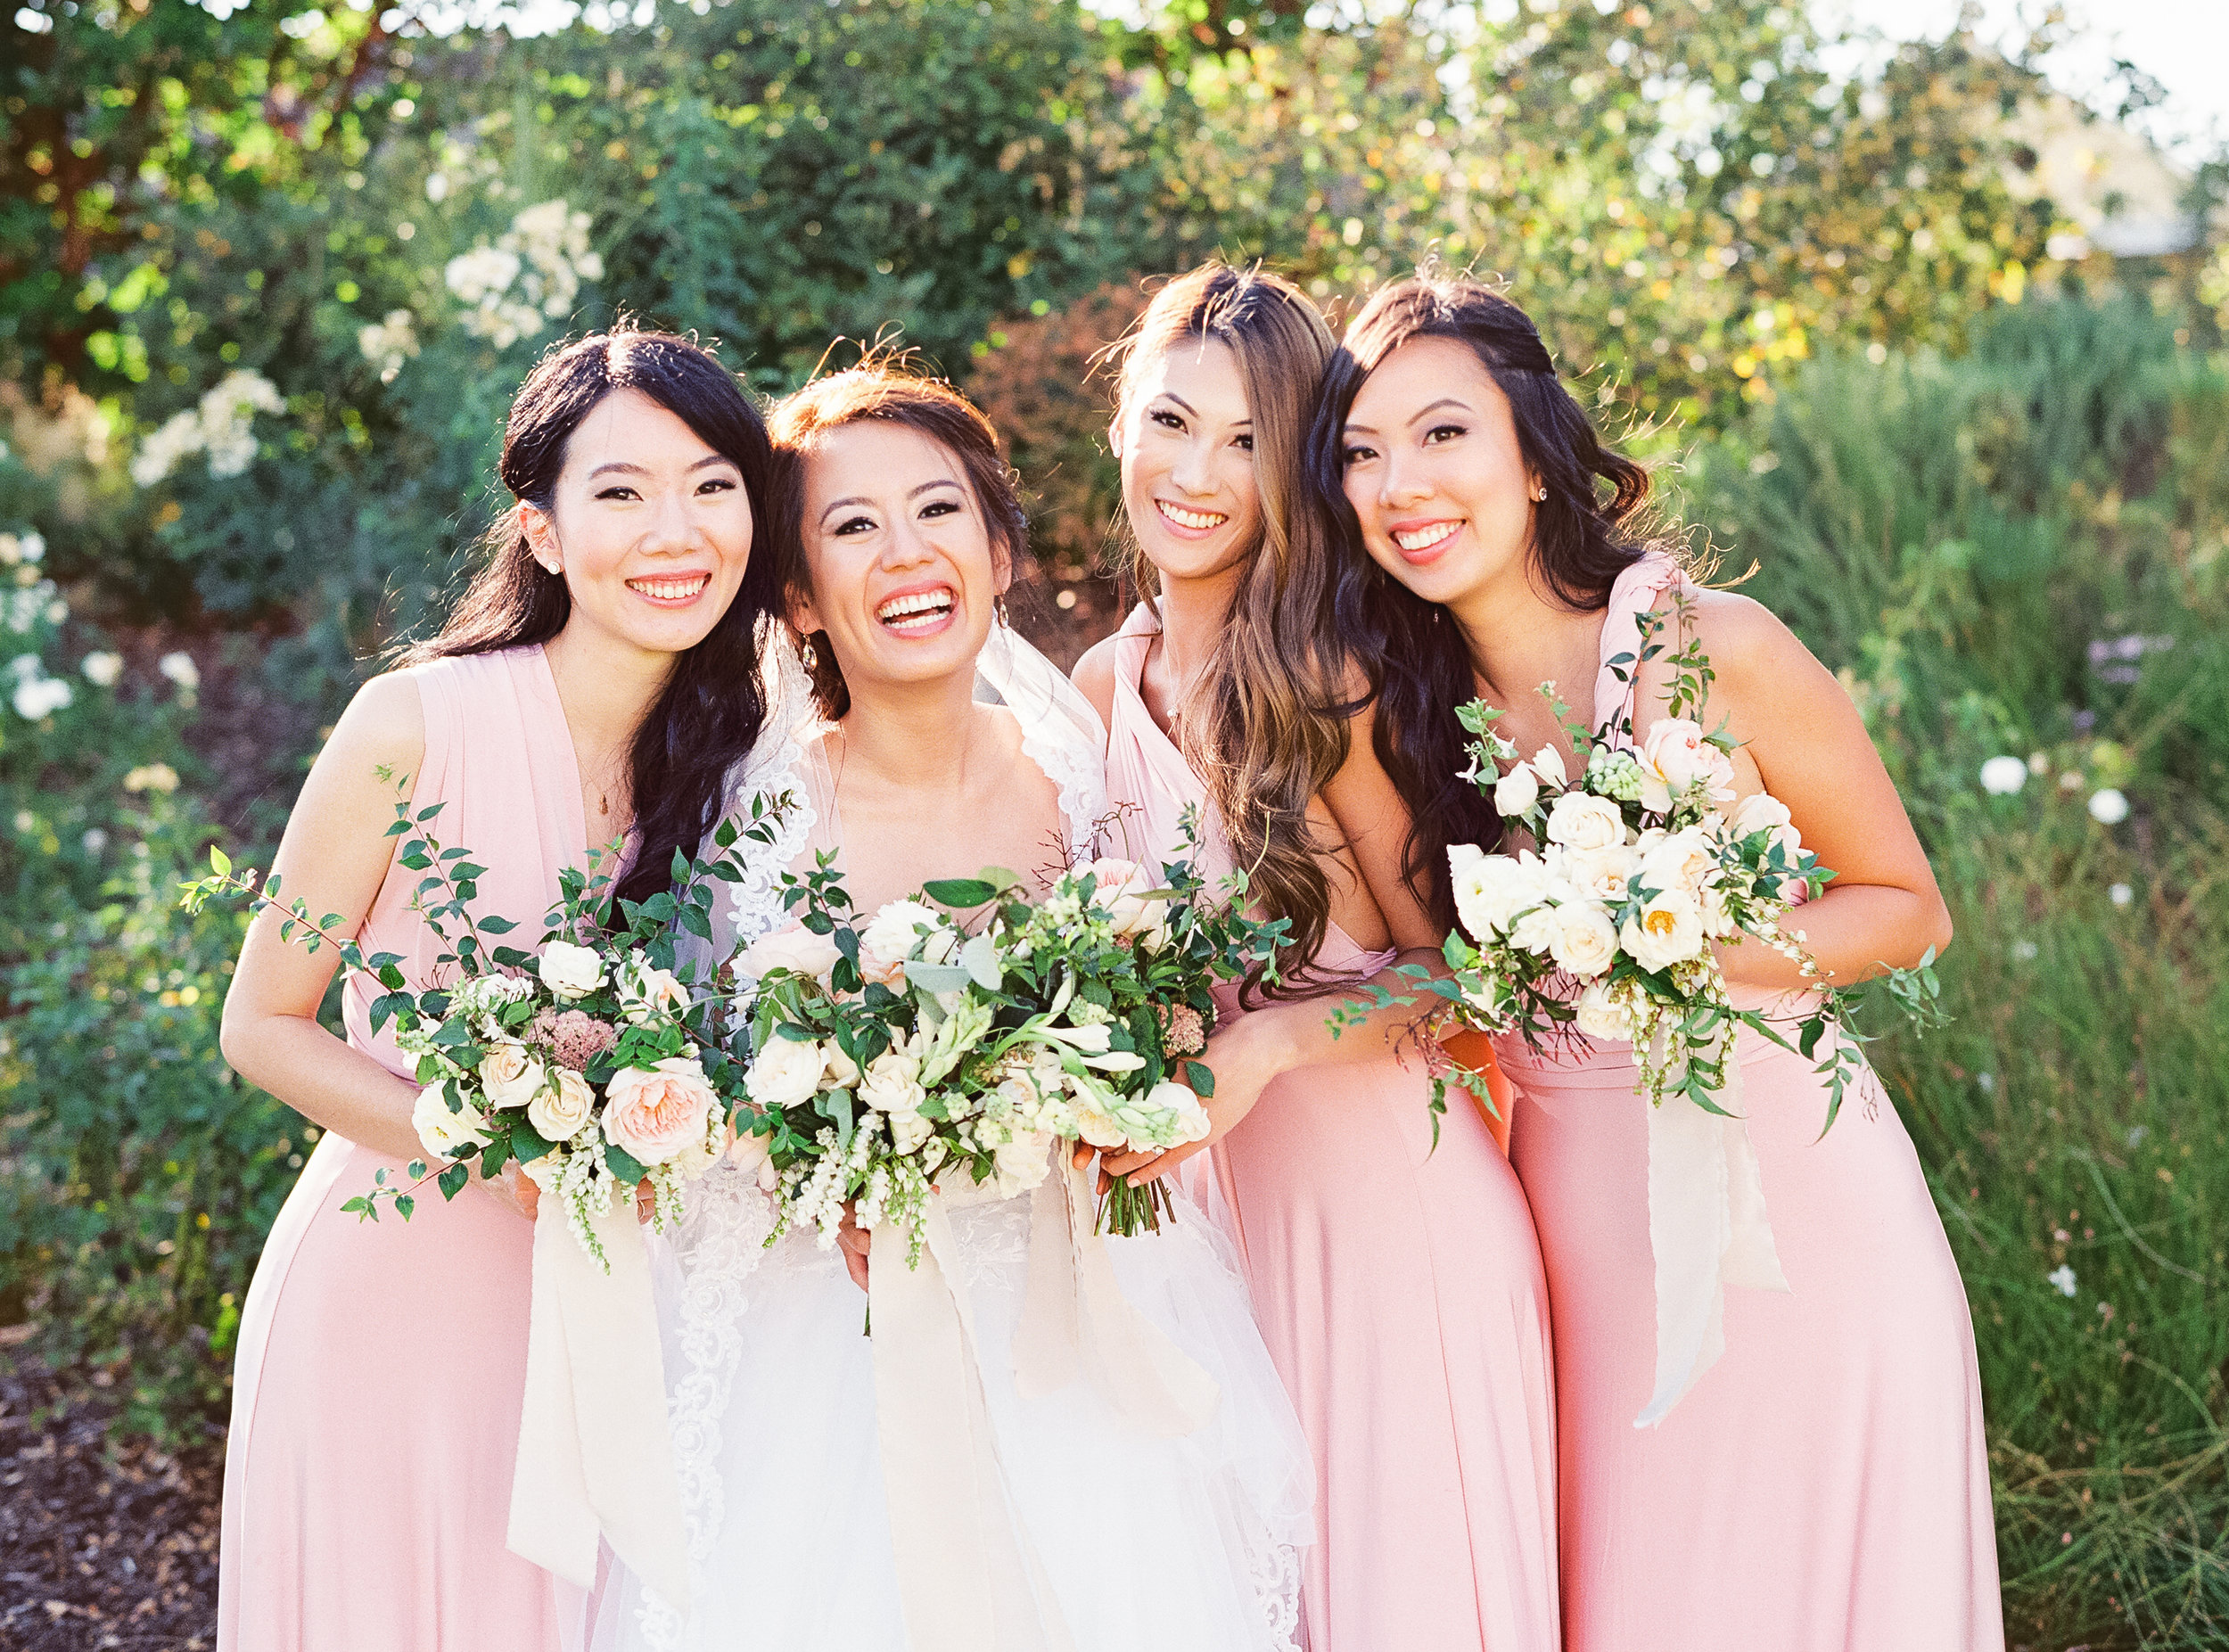 Napa Valley Wedding | Michele Beckwith | Chinese Wedding | Vineyard Wedding | Fine Art Wedding Blog | Joy Wed | Canadian Wedding Blog | Blush Bridesmaid Dress | Organic Wedding Bouquet